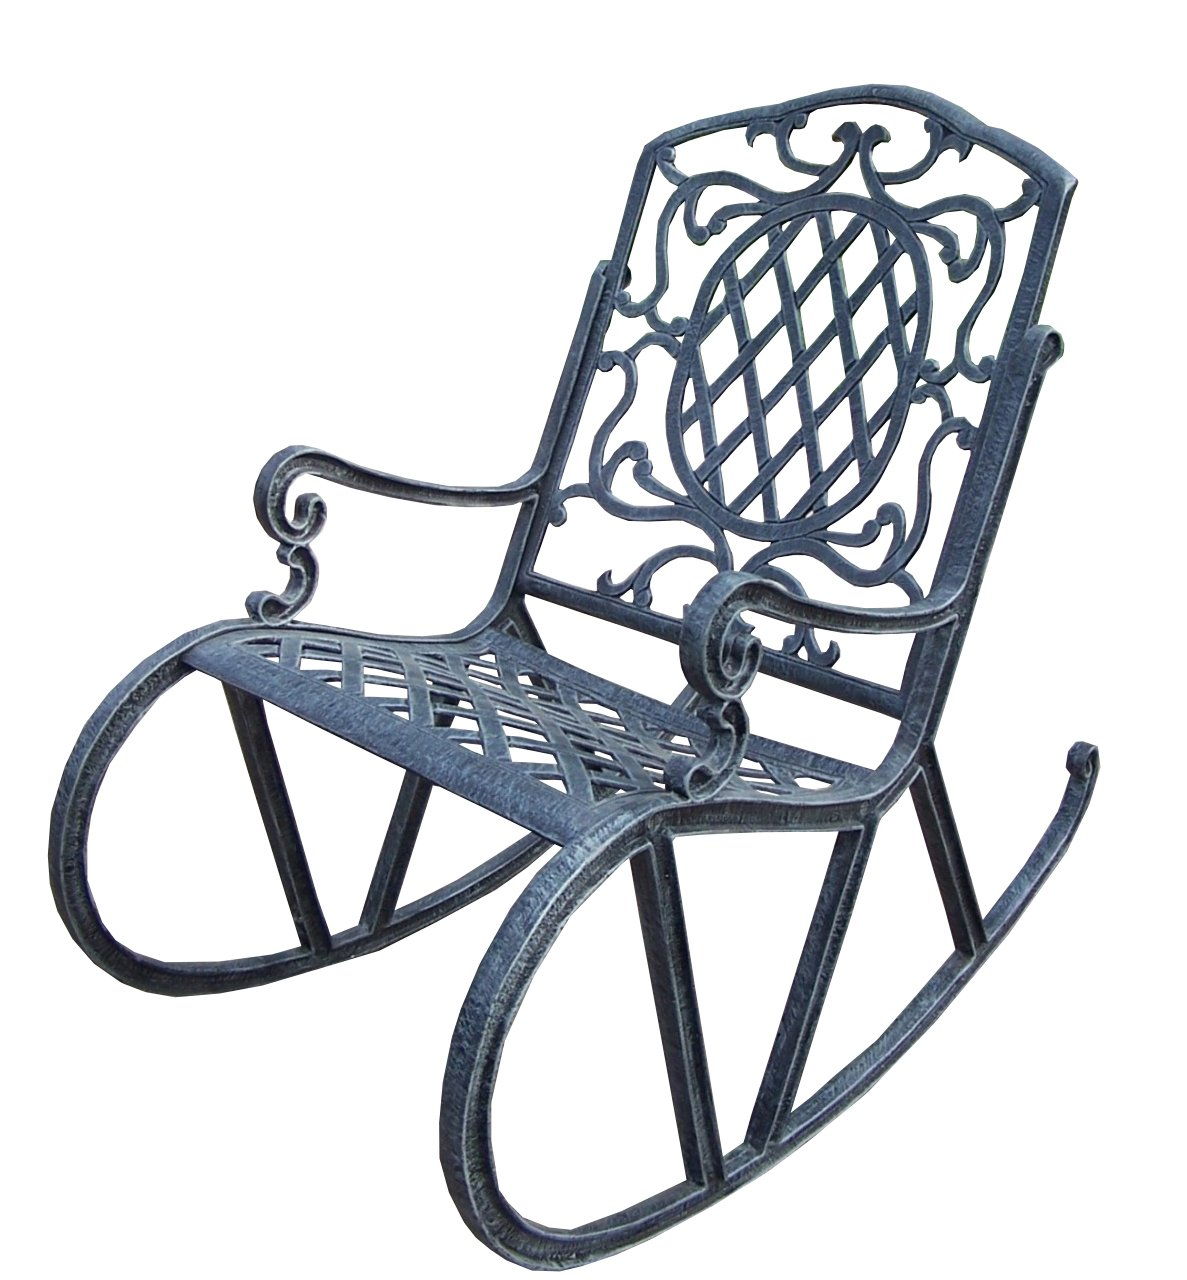 Oakland Living Mississippi Cast Aluminum Rocking Chair - Rust Free Cast Aluminum Construction Hardened Powder Coat Finish in Verdi Grey for Years of Beauty Easy to Follow Assembly Instructions and Product Care Information - patio-furniture, patio-chairs, patio - 71vnEnRamHL -